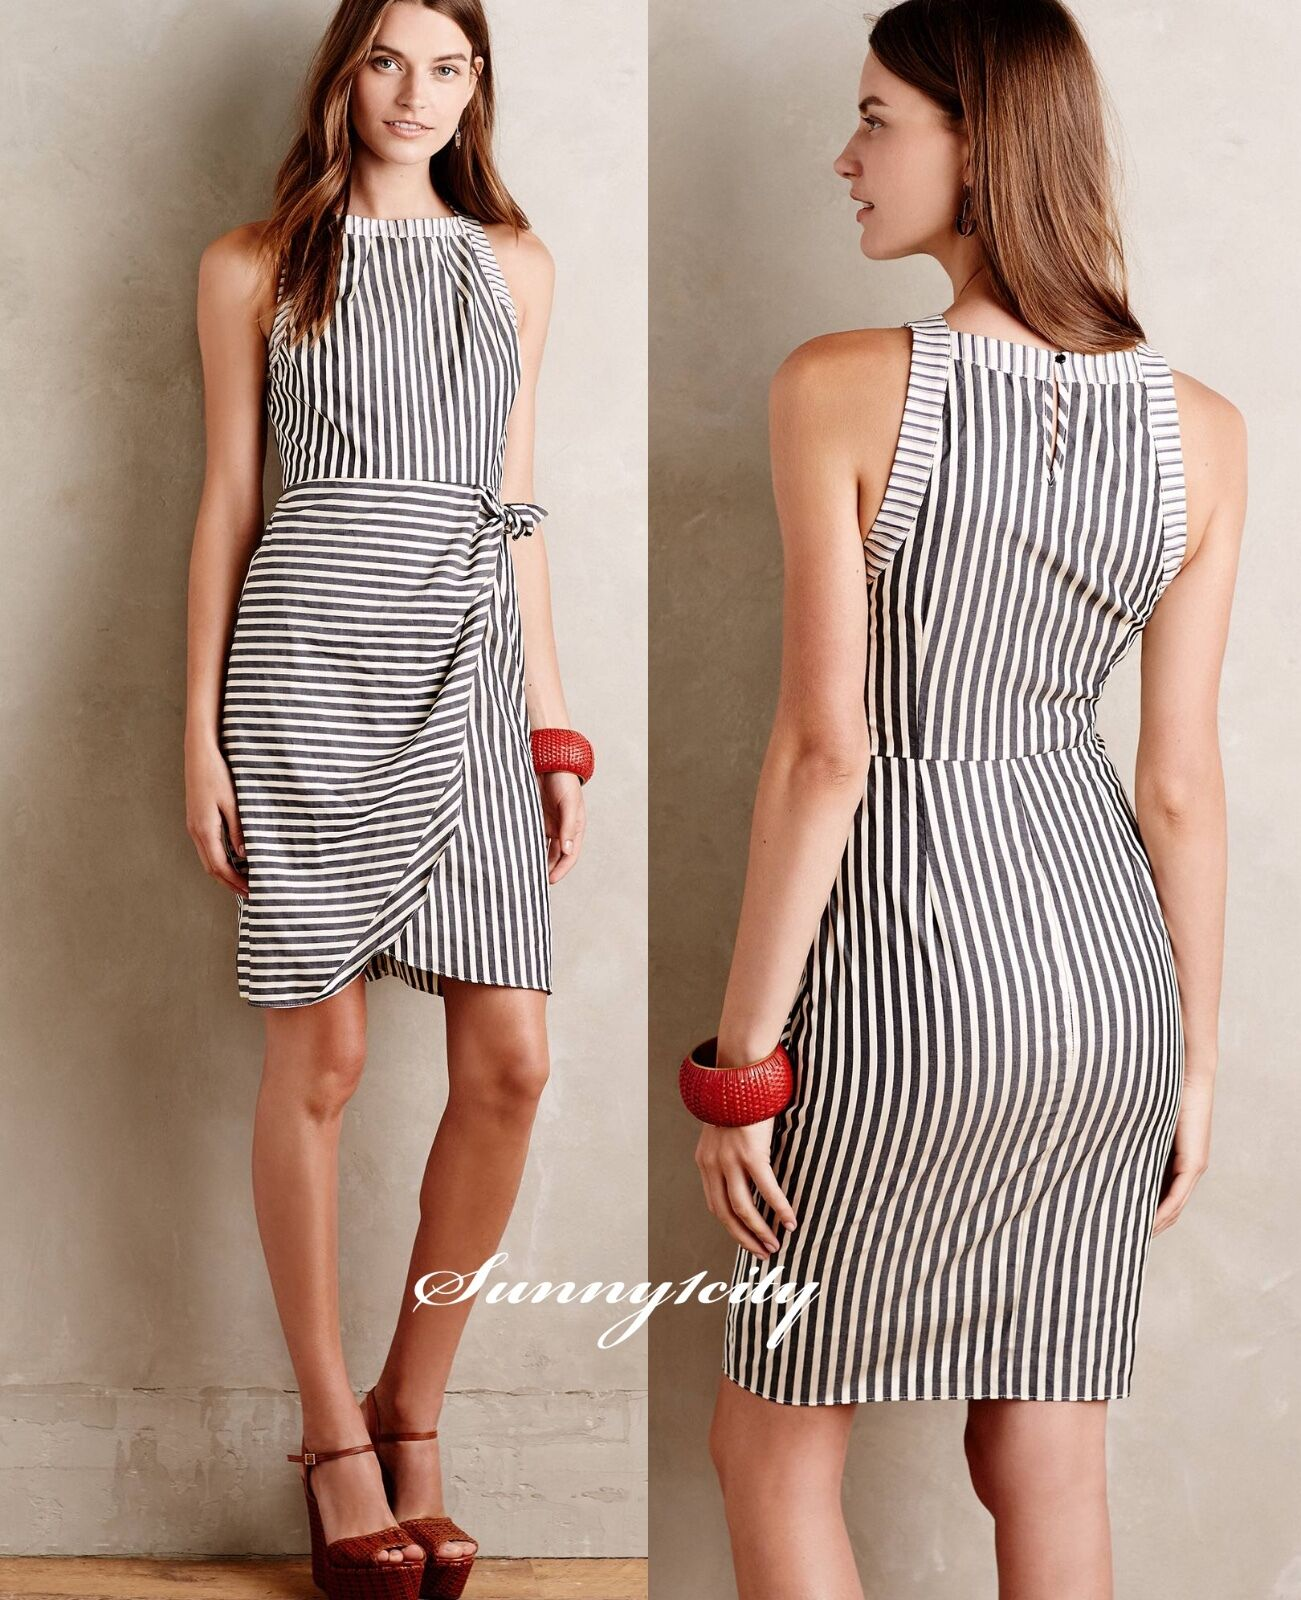 c08c147c1a31 NWT 0 Anthropologie Oakdale Dress by Maeve Simple Elegant Unique made USA  RARE